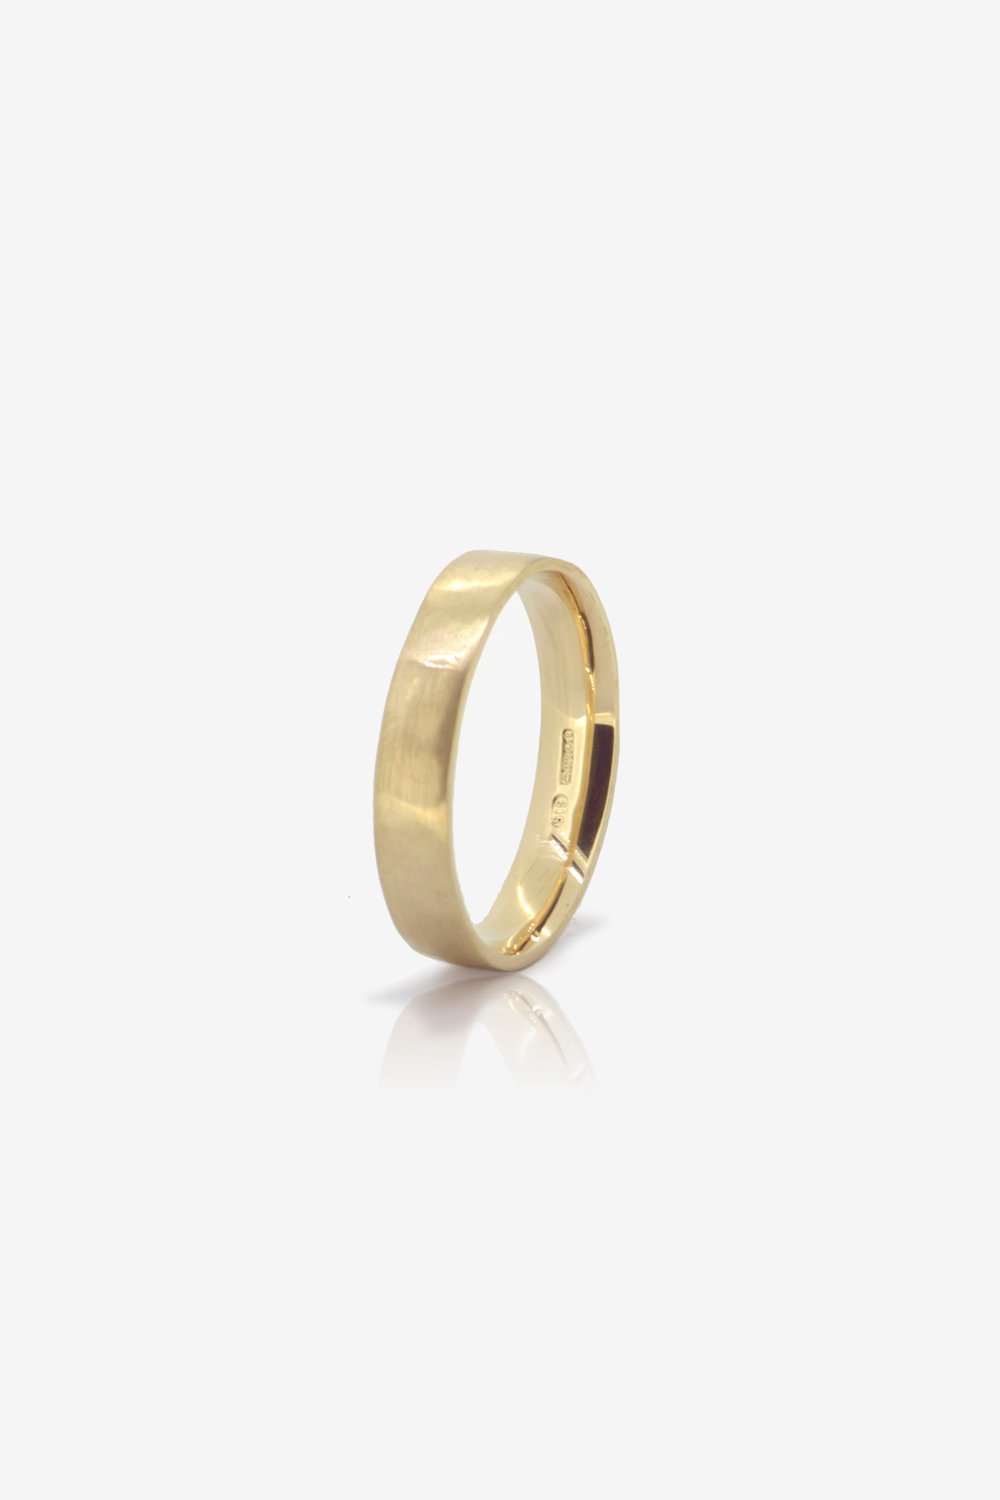 9K Ecogold wedding band